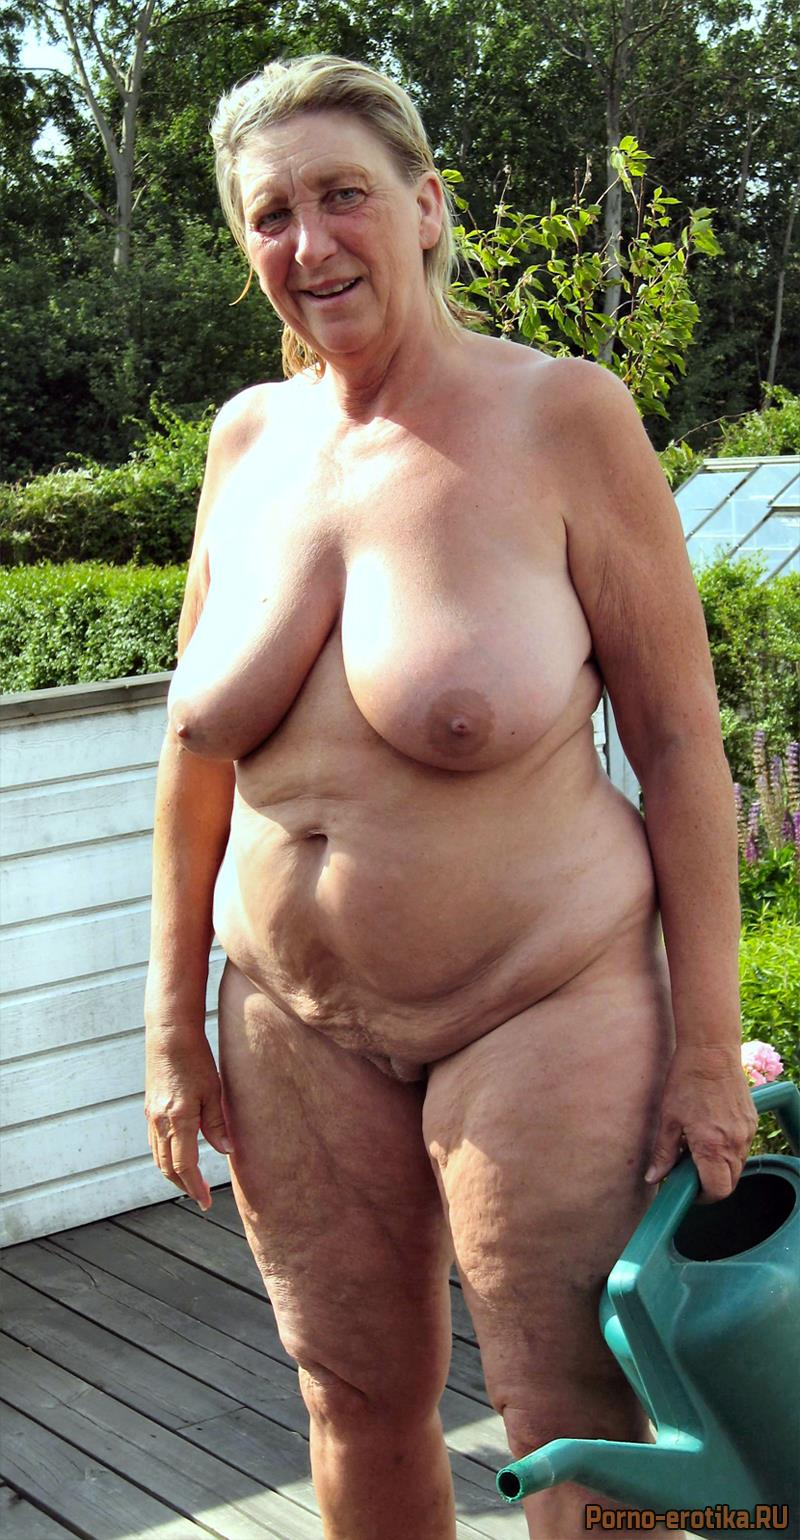 Naked old women, alaskan amature porn